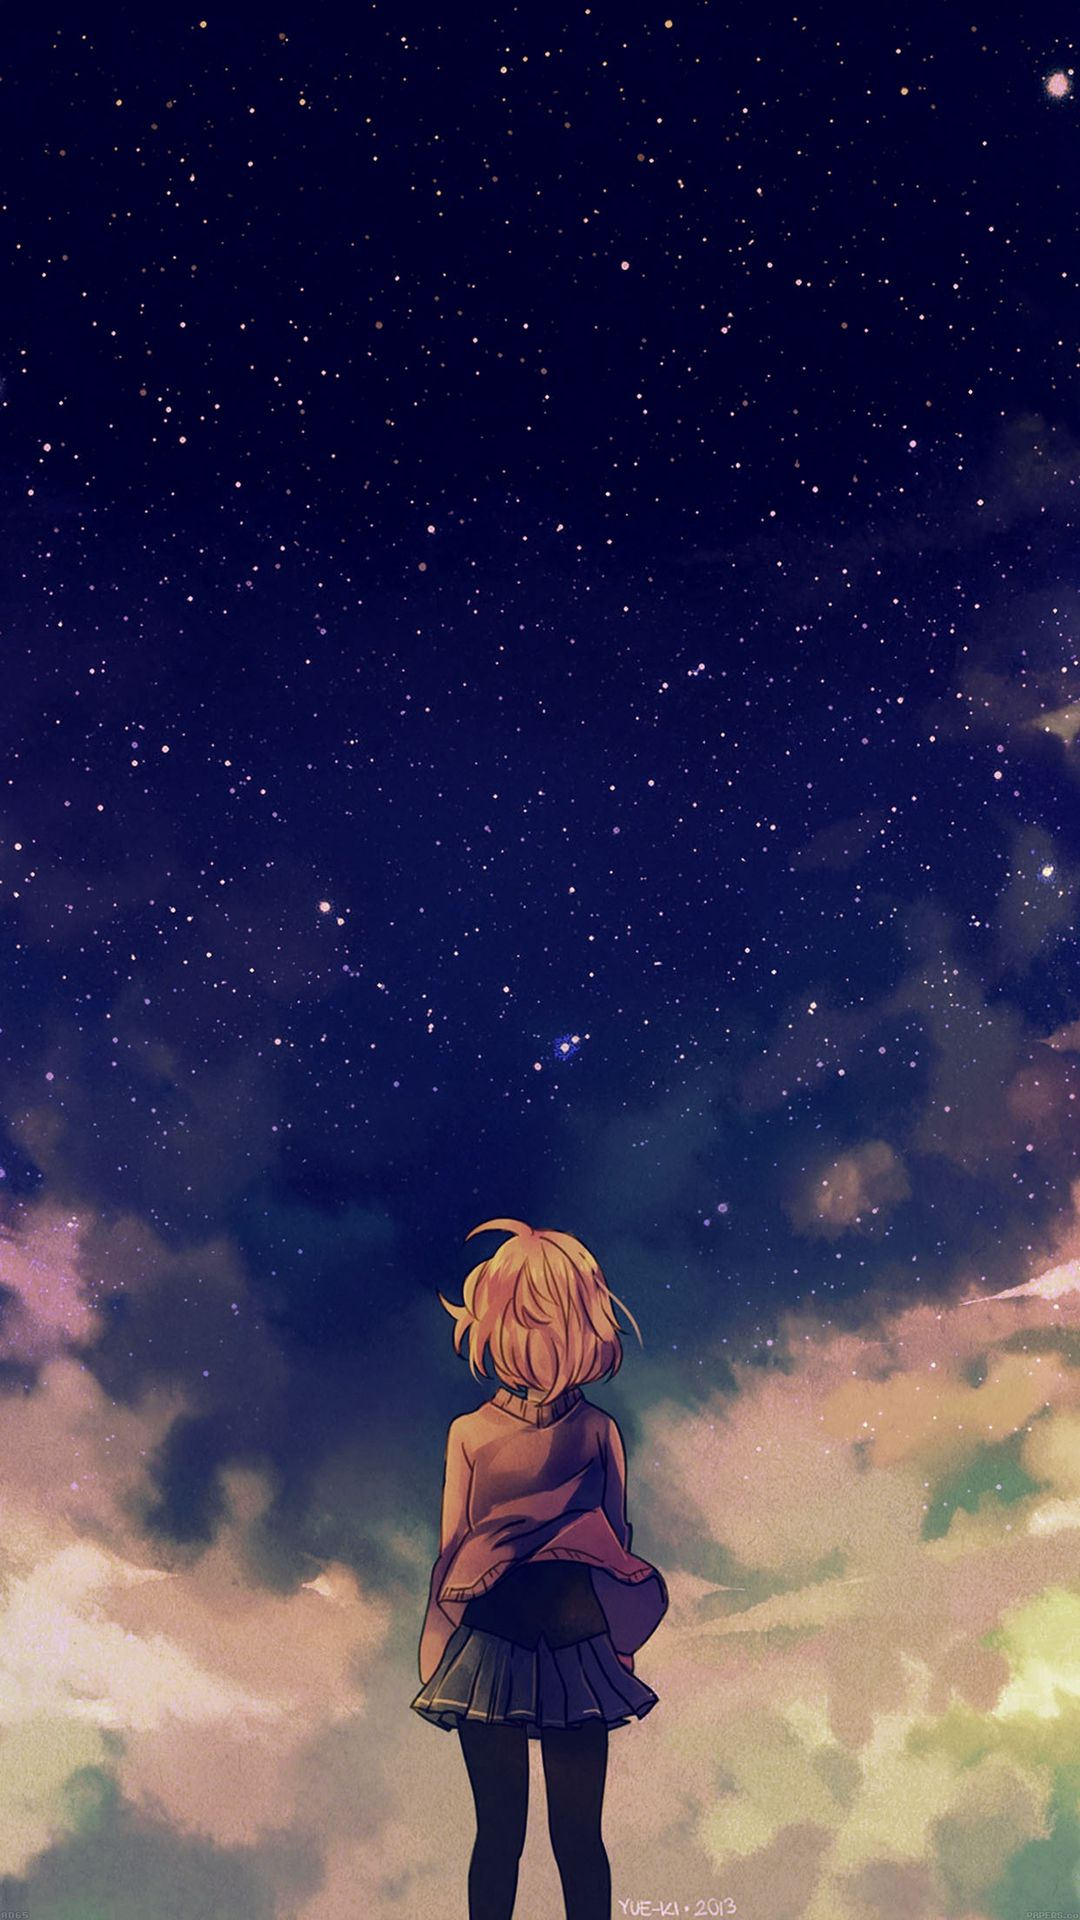 1080x1920 Starry Space Illust Anime Girl IPhone 6 Wallpaper | IPhone  Wallpaper .